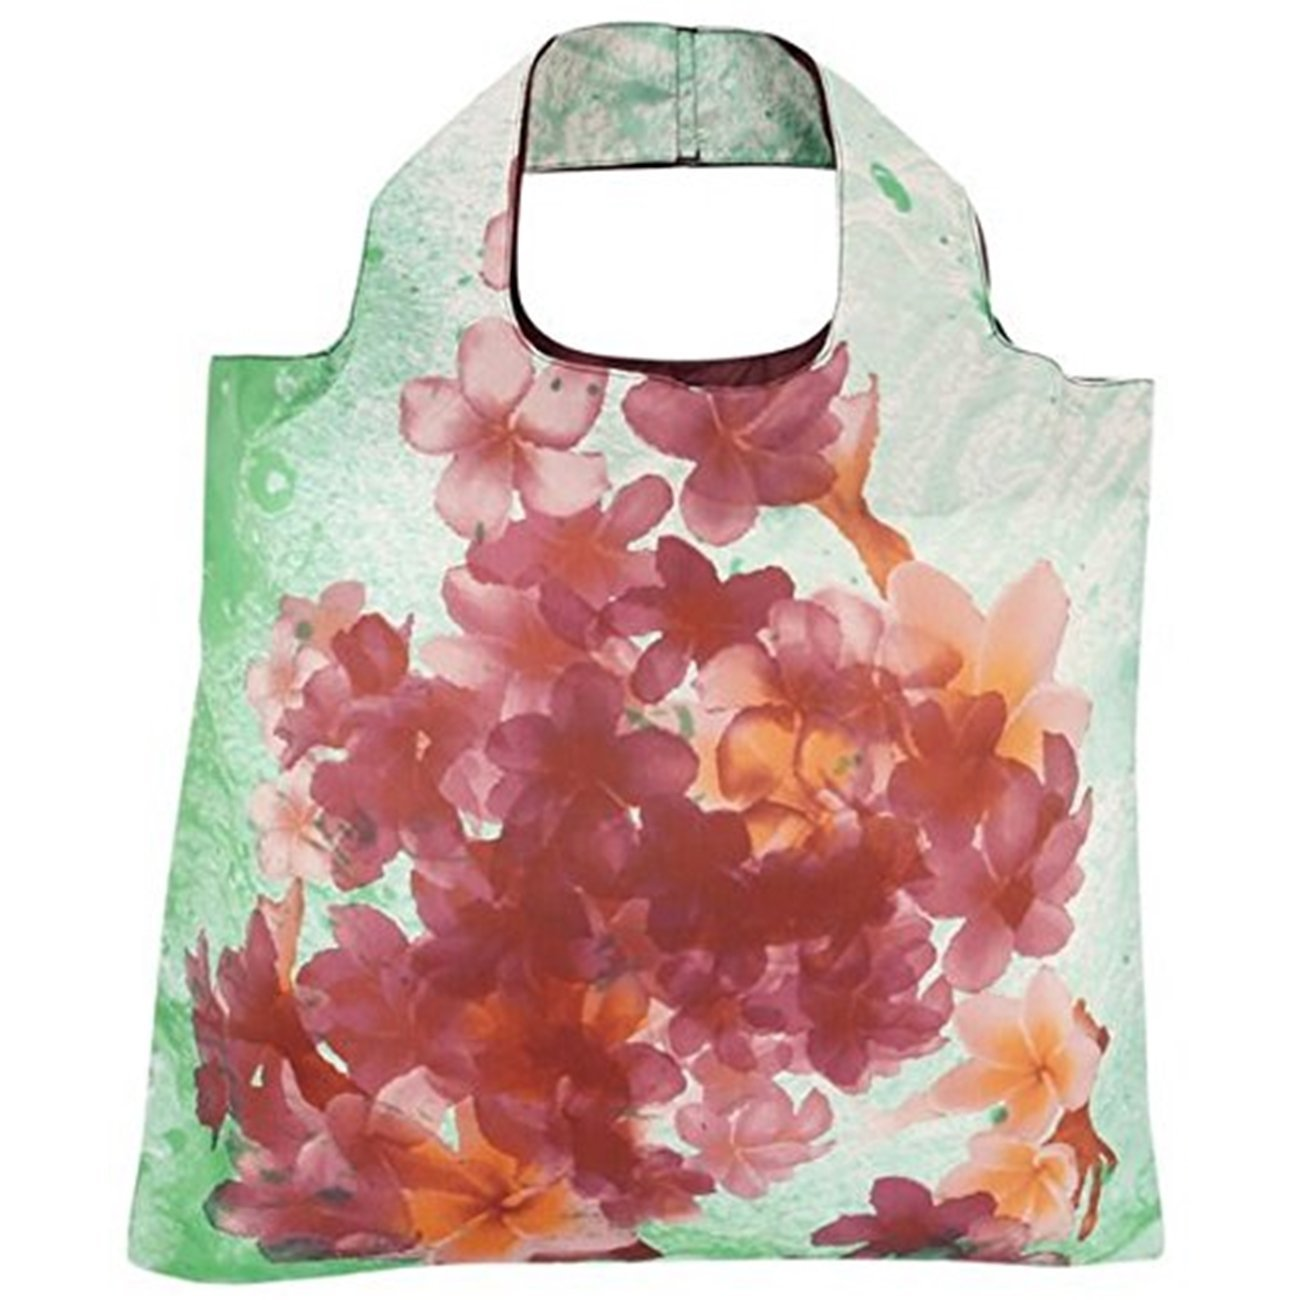 Envirosax Havana Reusable Shopping Bag 5, HV.B5